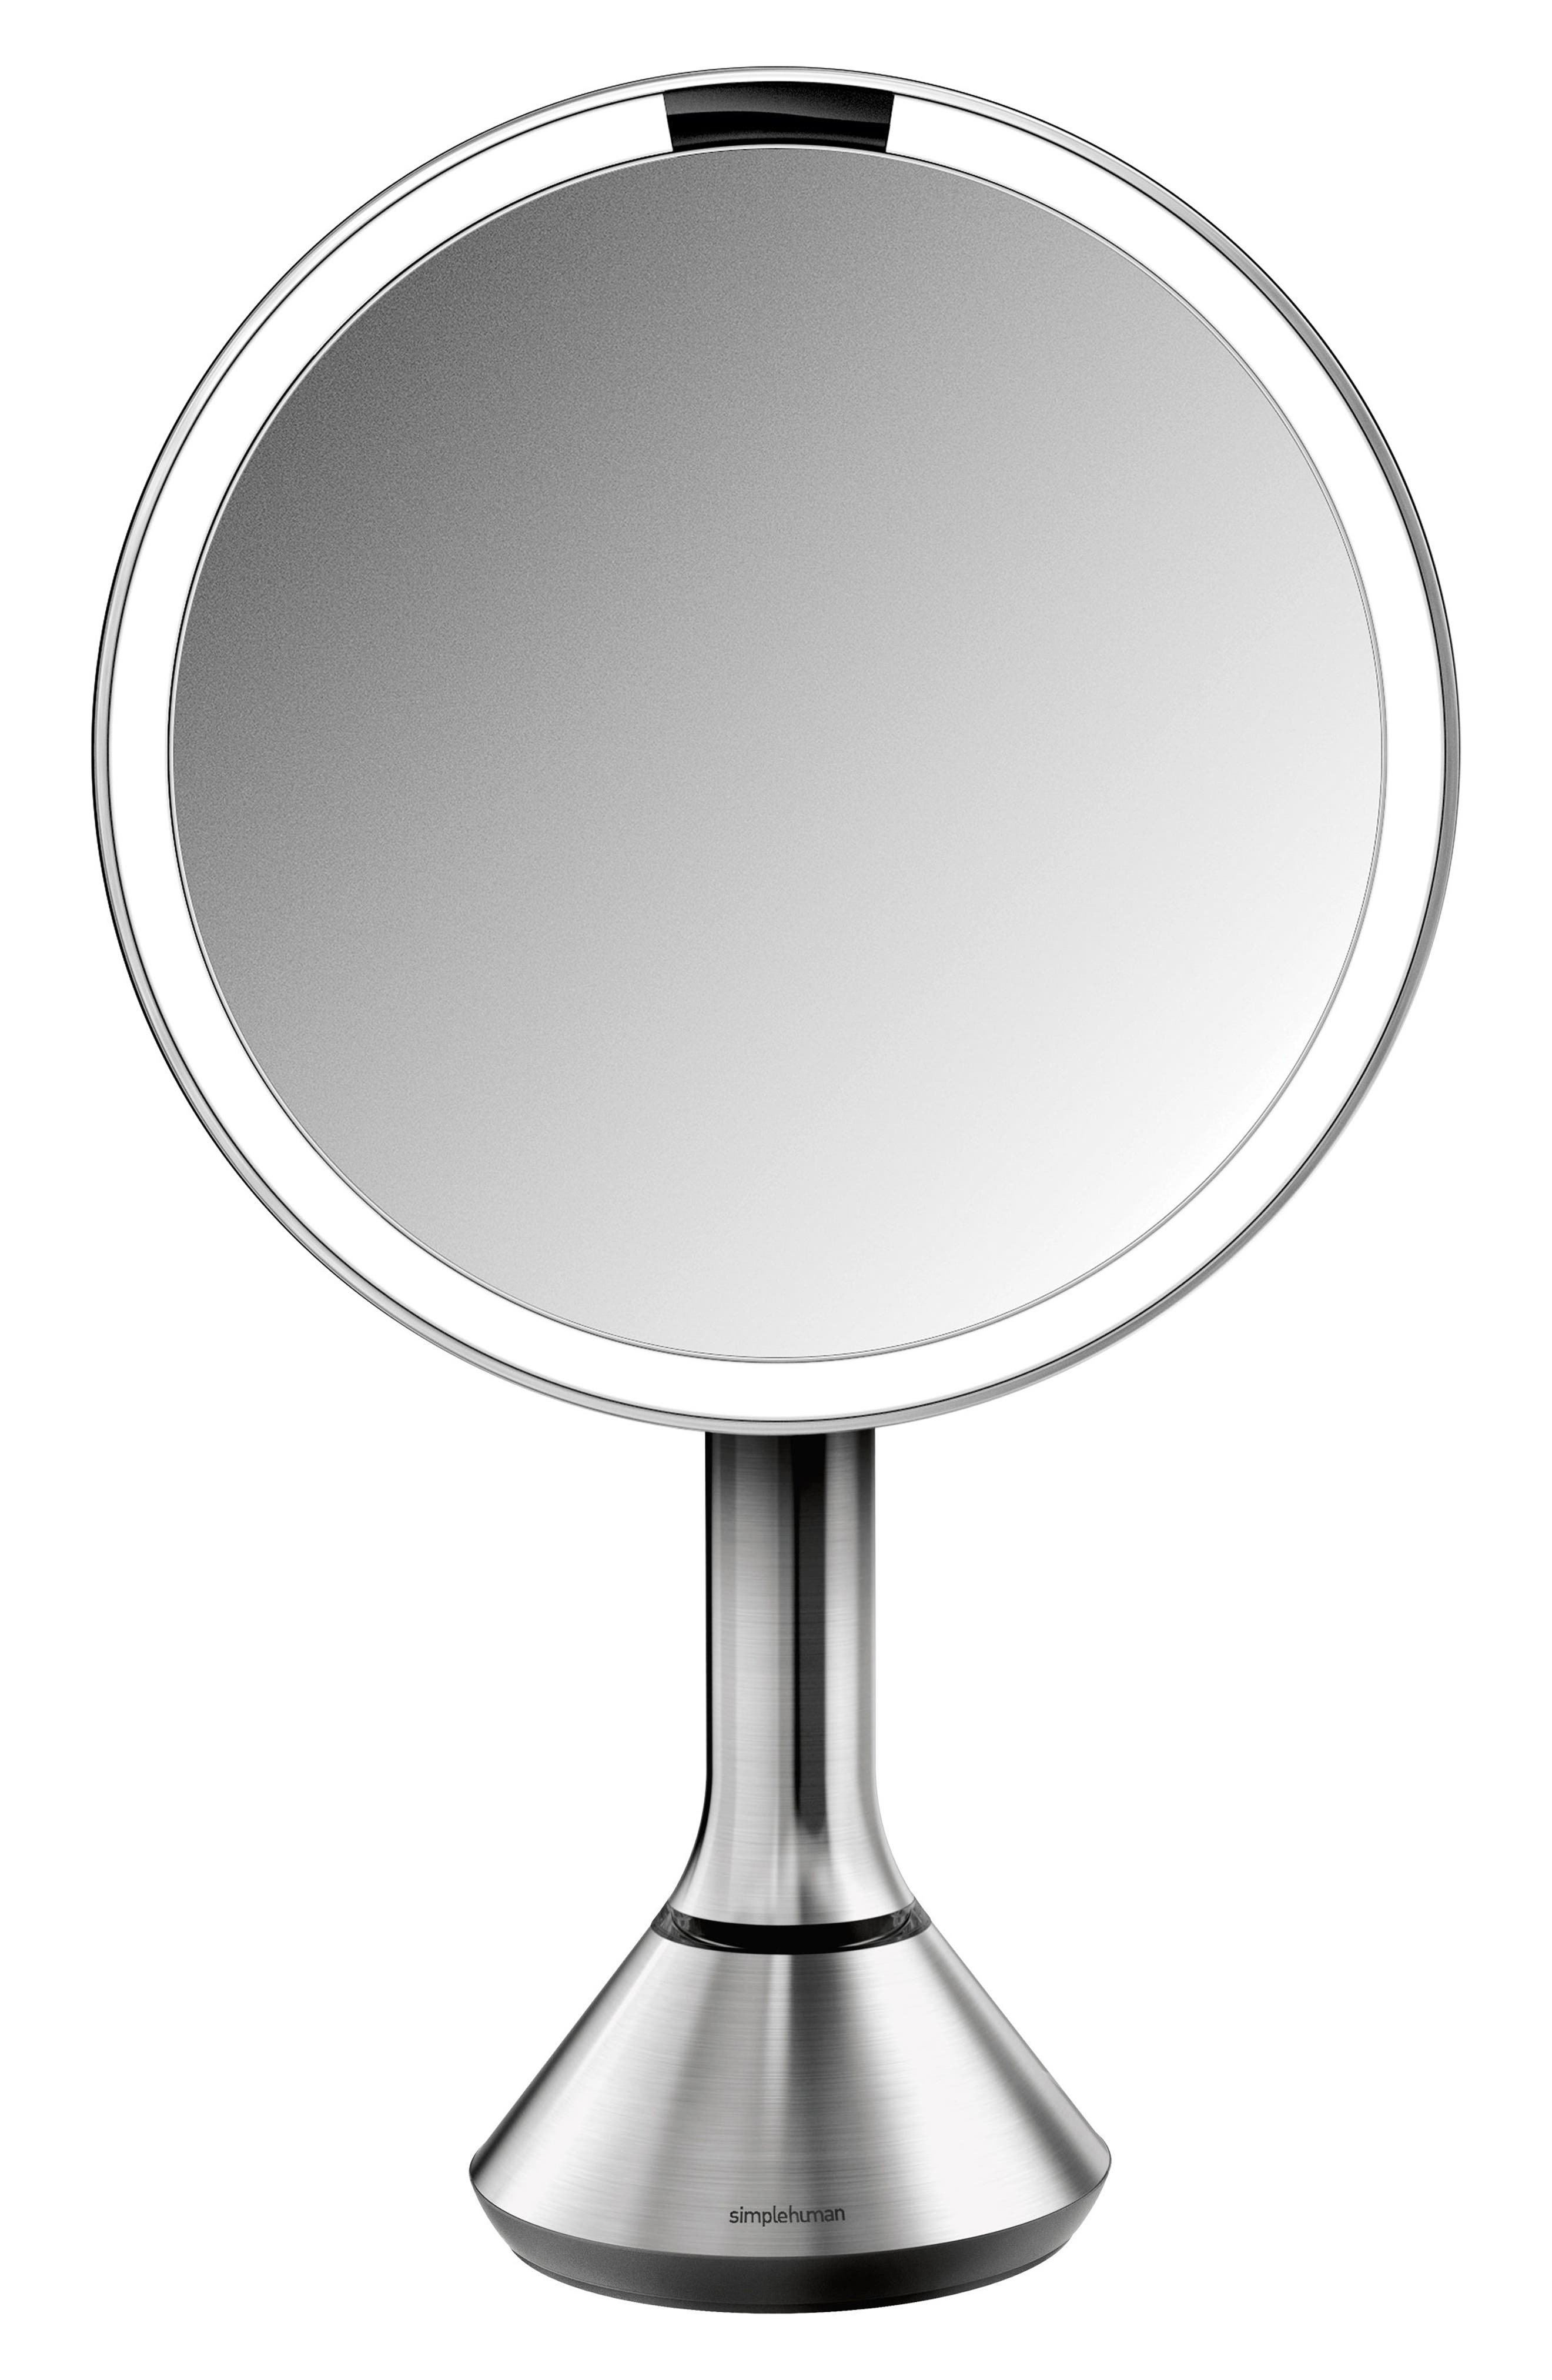 Eight Inch Sensor Mirror with Brightness Control,                             Main thumbnail 1, color,                             BRUSHED STAINLESS STEEL